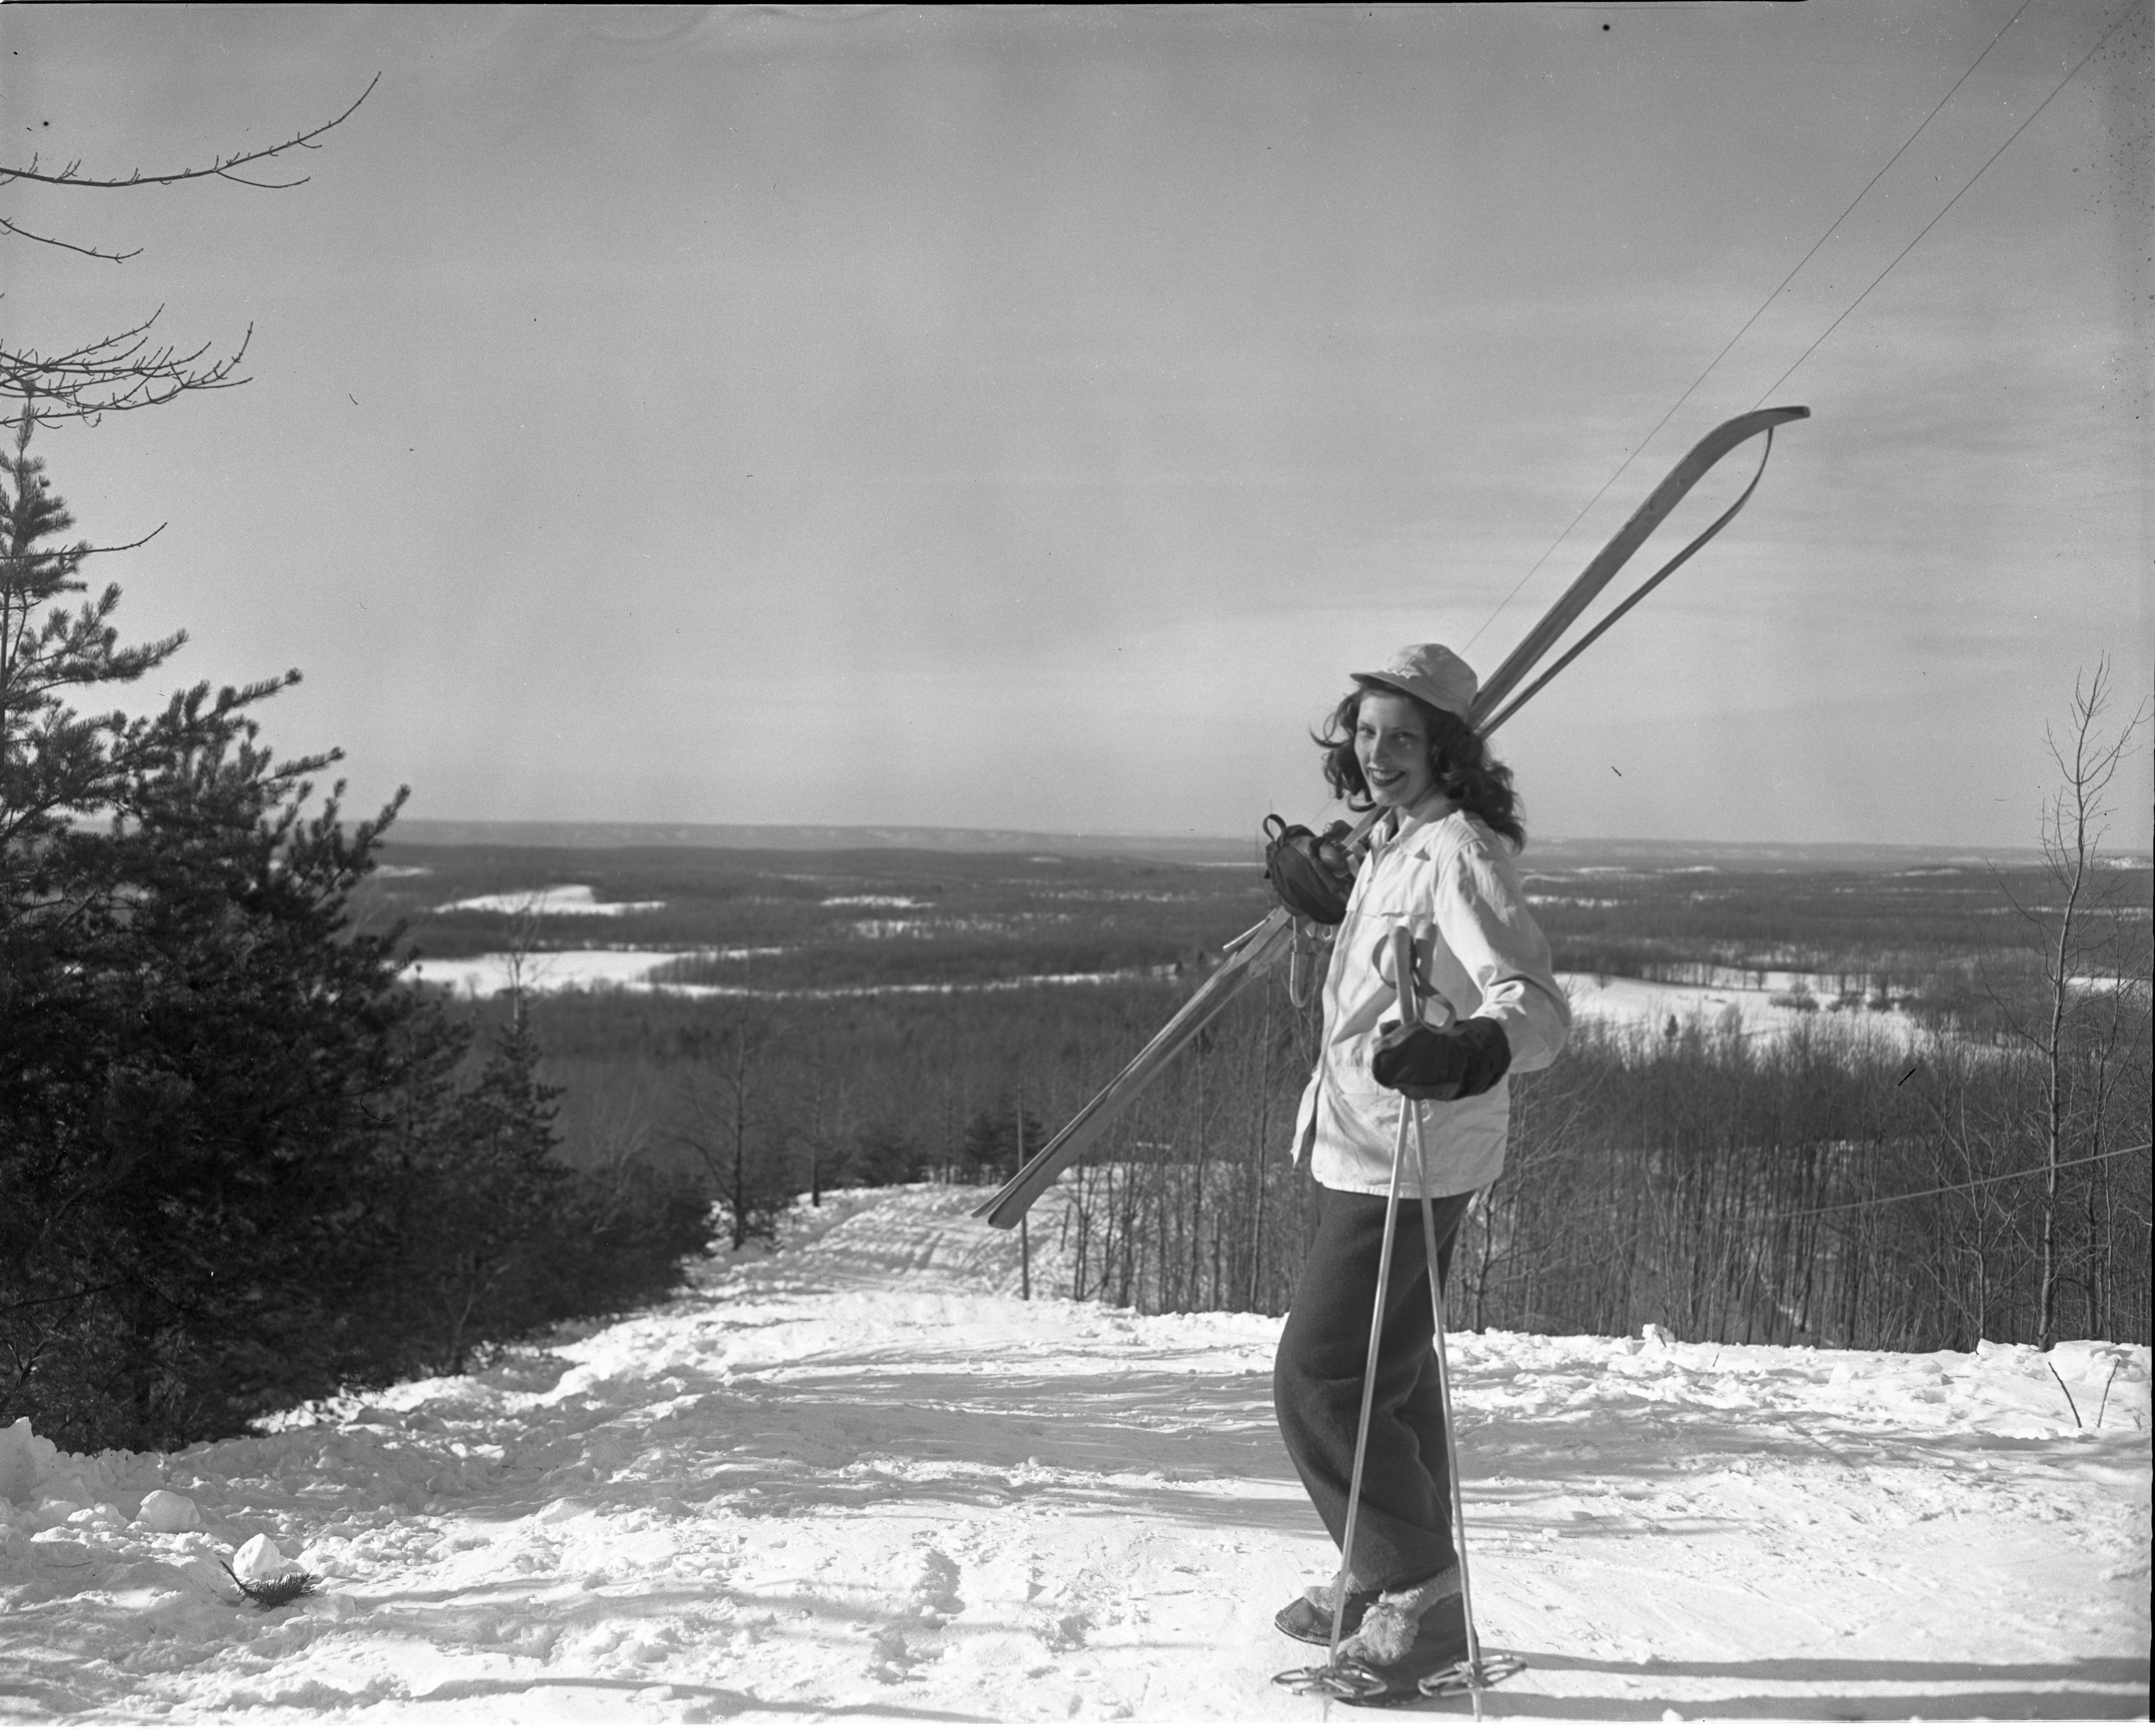 Skier Poses With Her Skis Over Her Shoulder At Caberfae In Cadillac, February 1946 image